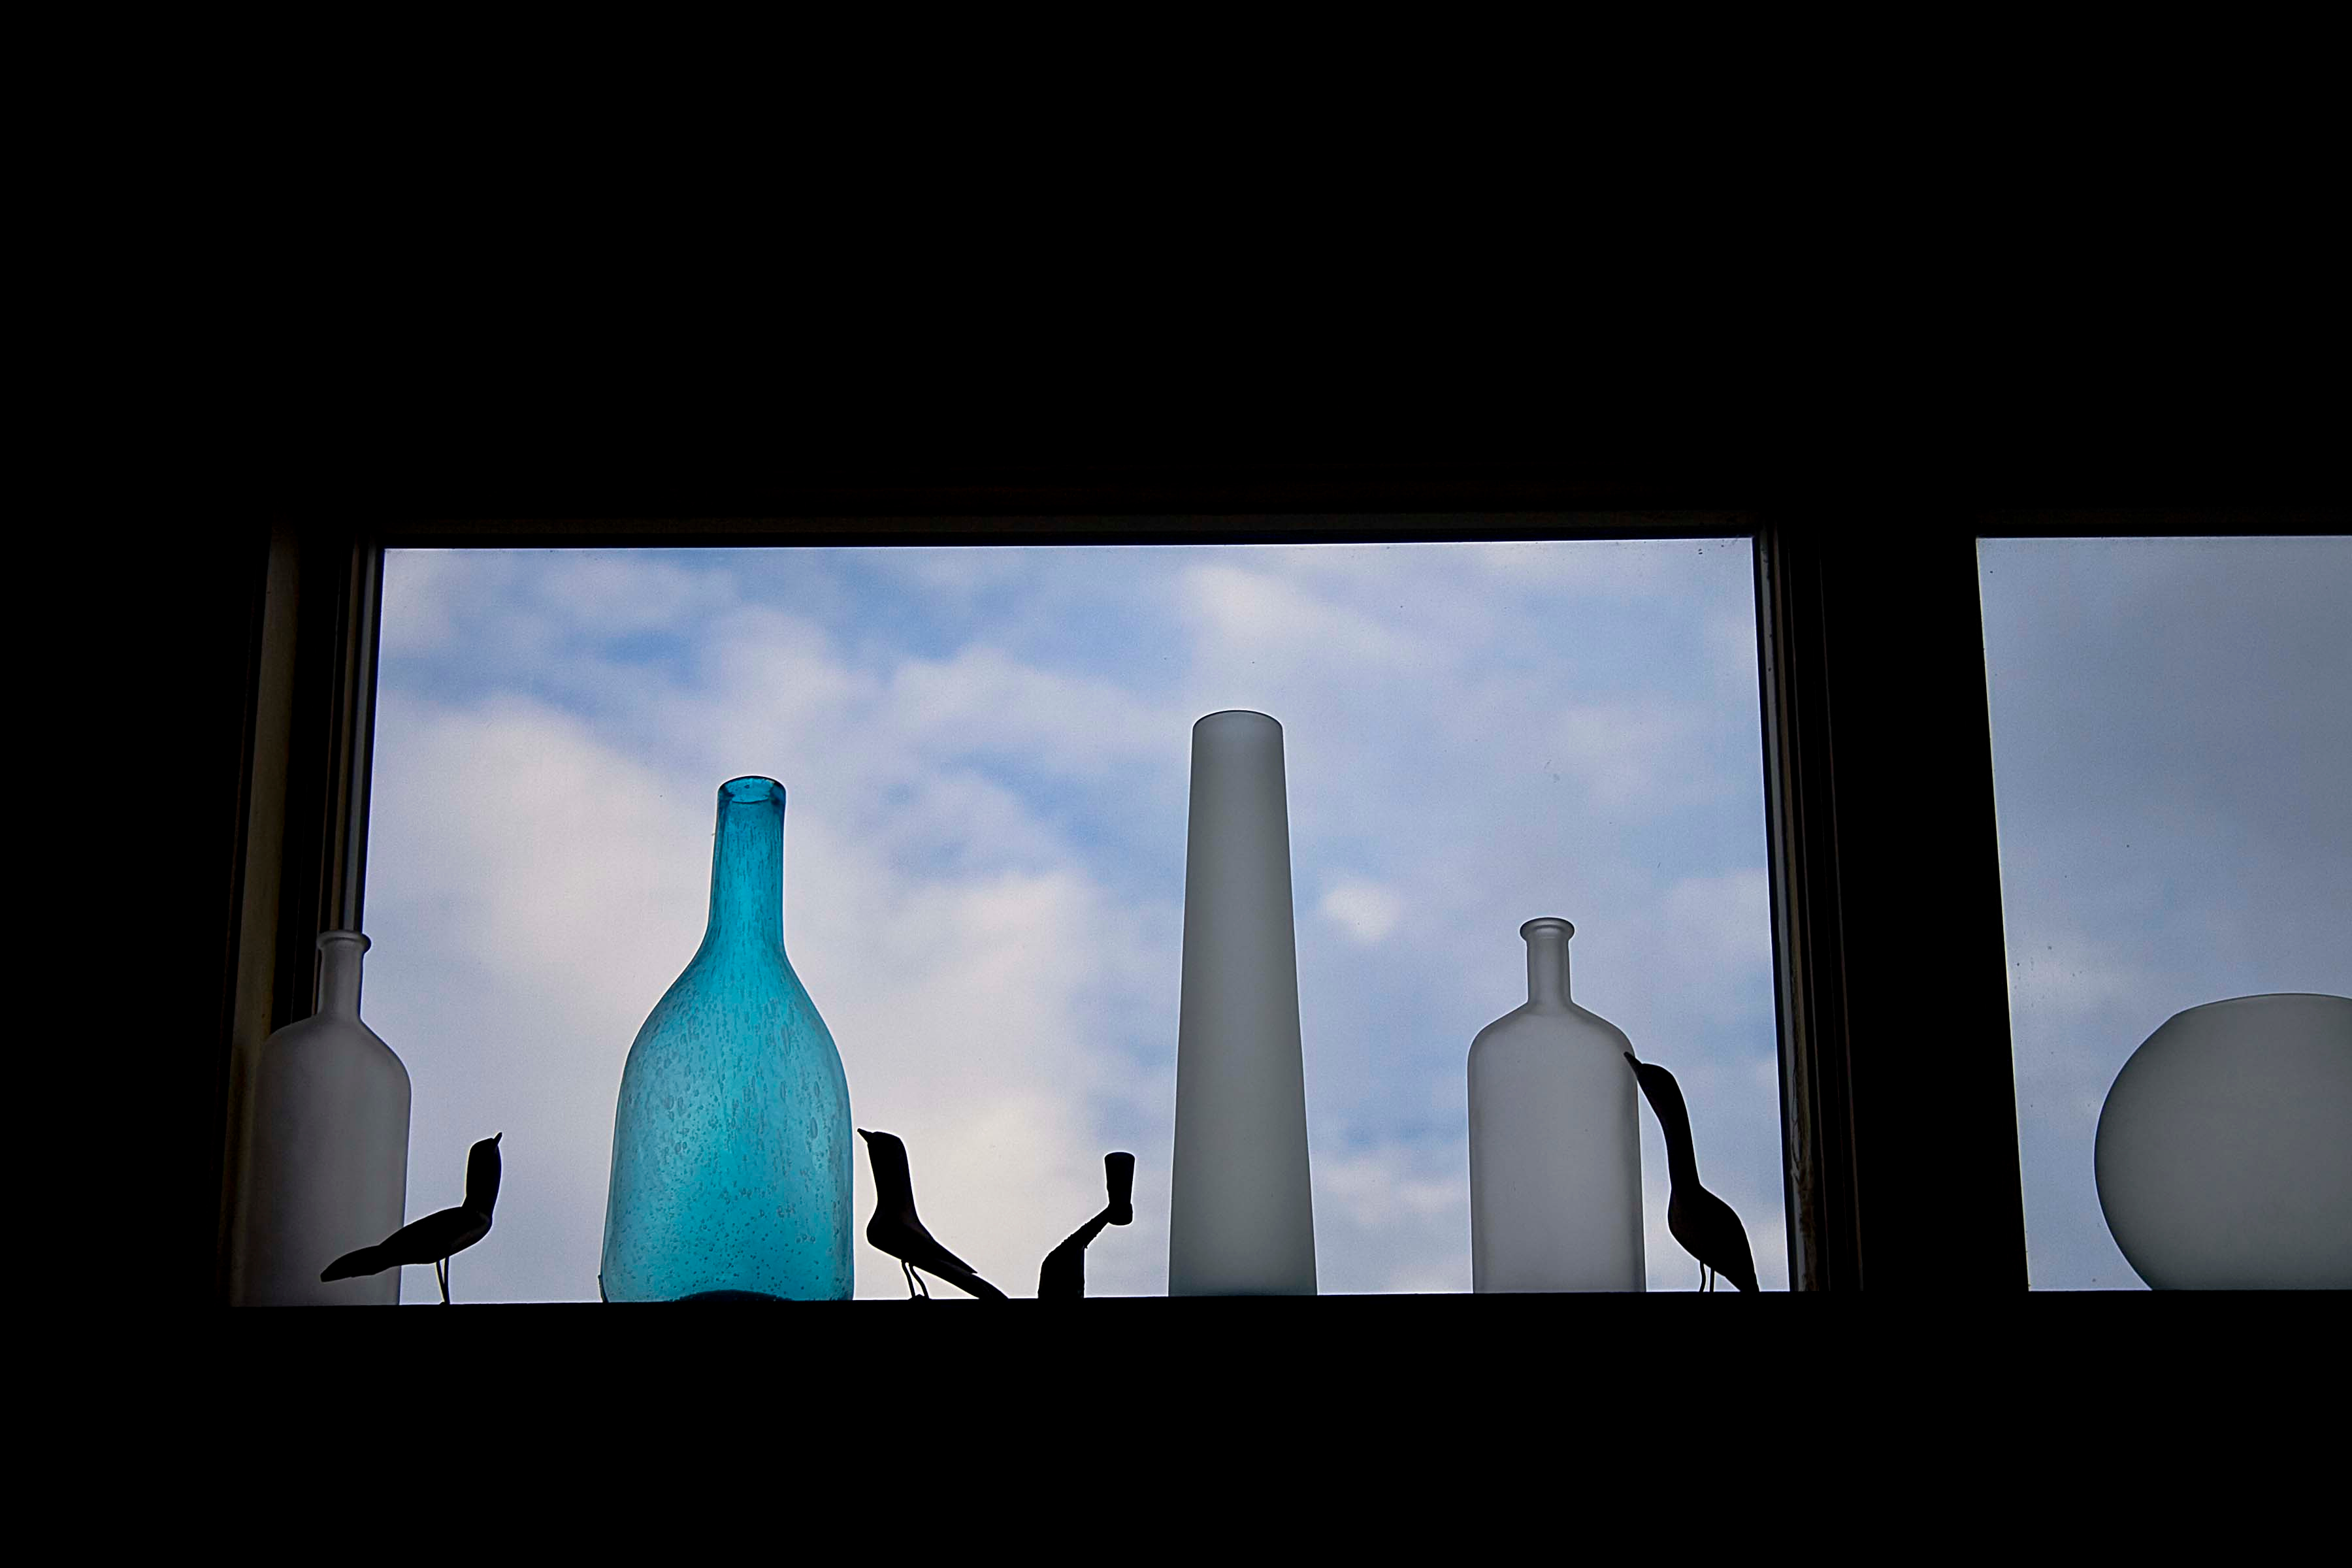 Bottles on the Ledge